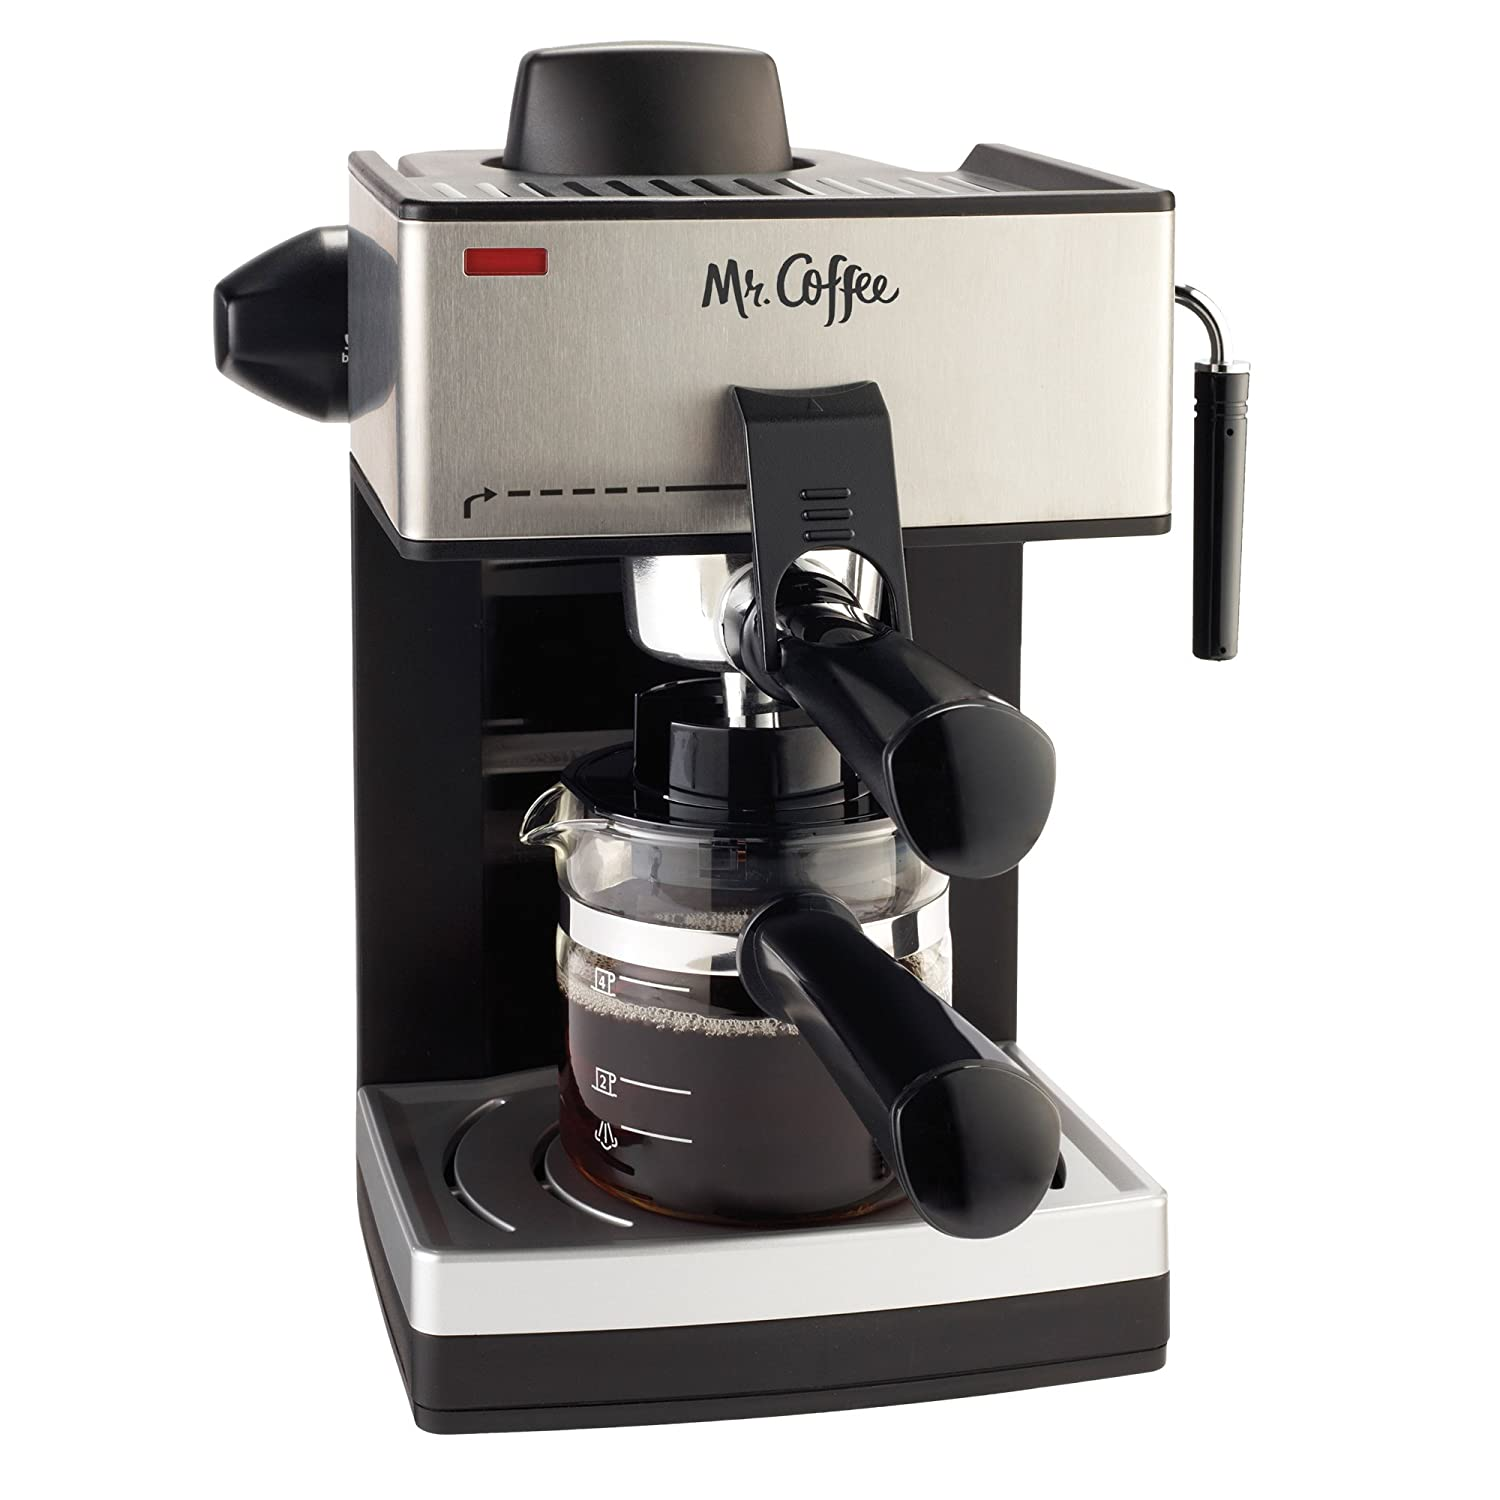 Steam espresso machine coffee cappuccino espresso latte New coffee machine